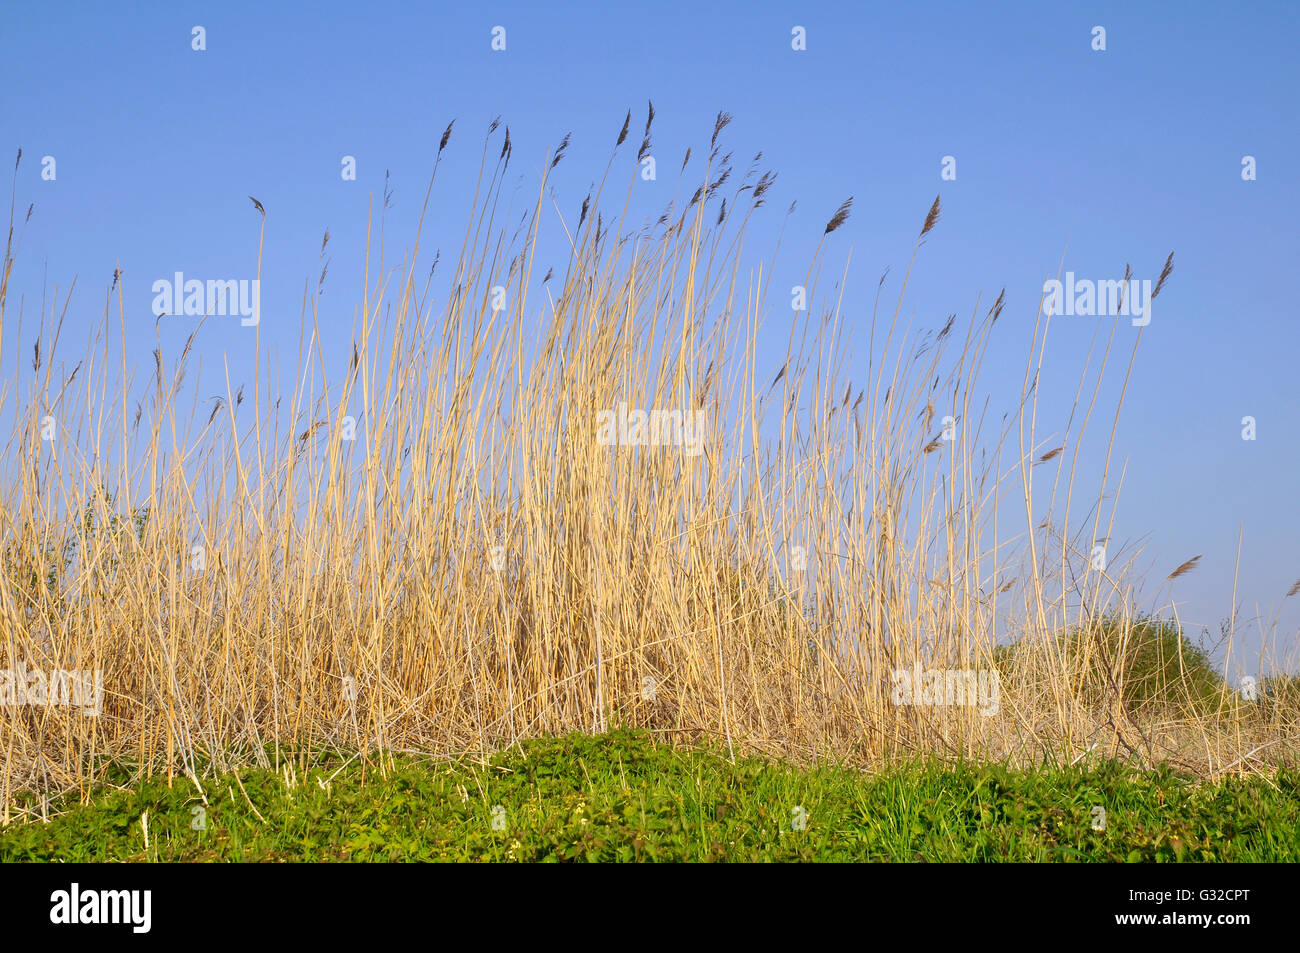 Large gold grass on blue sky background - Stock Image